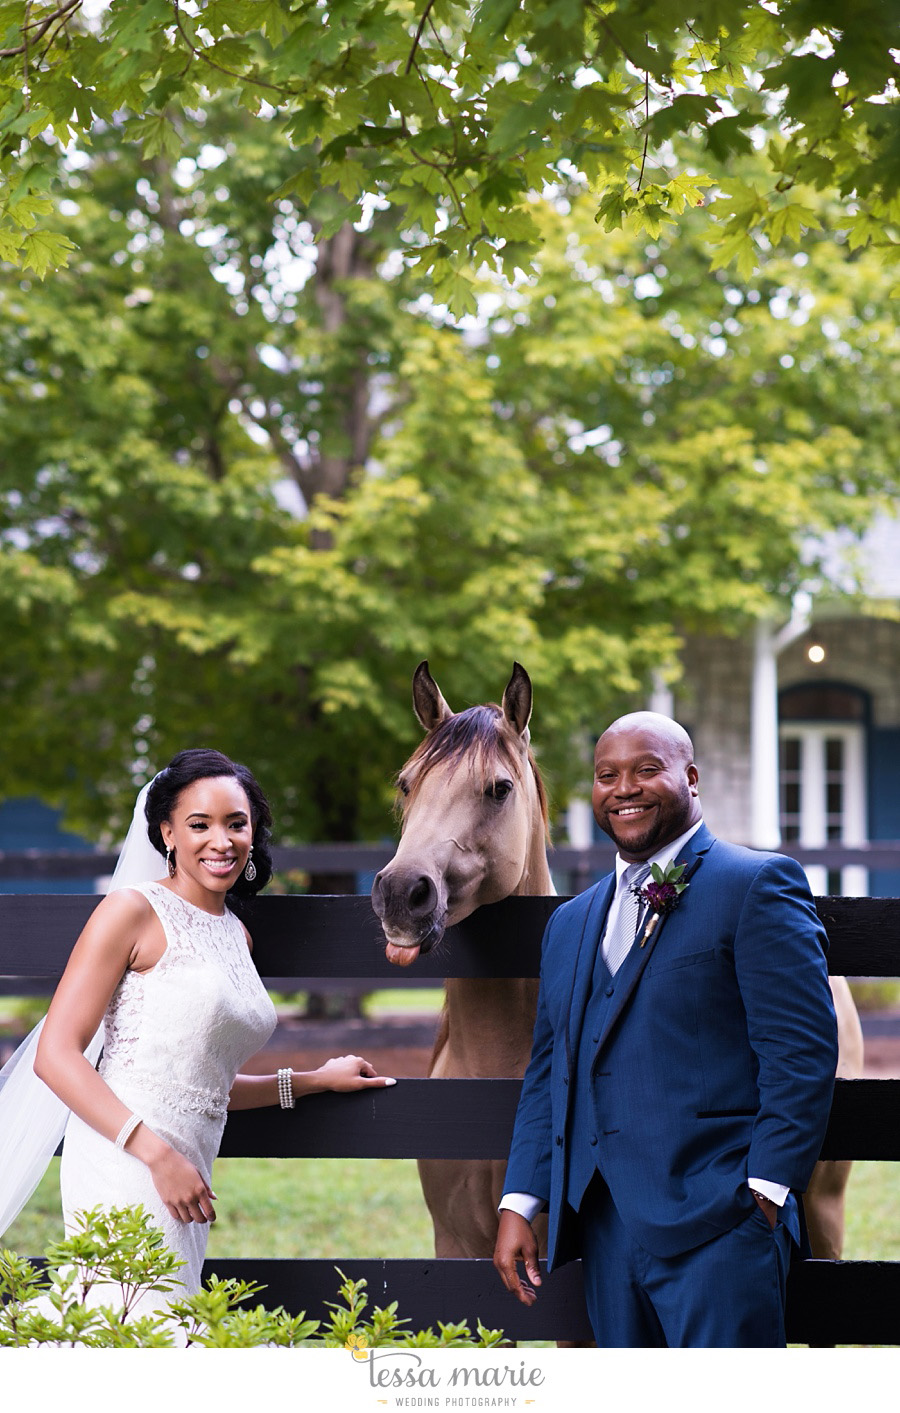 foxhall_outdoor_stables_wedding_candid_moments_tessa_marie_weddings_rittenhouse_design_a_fab_event_0097